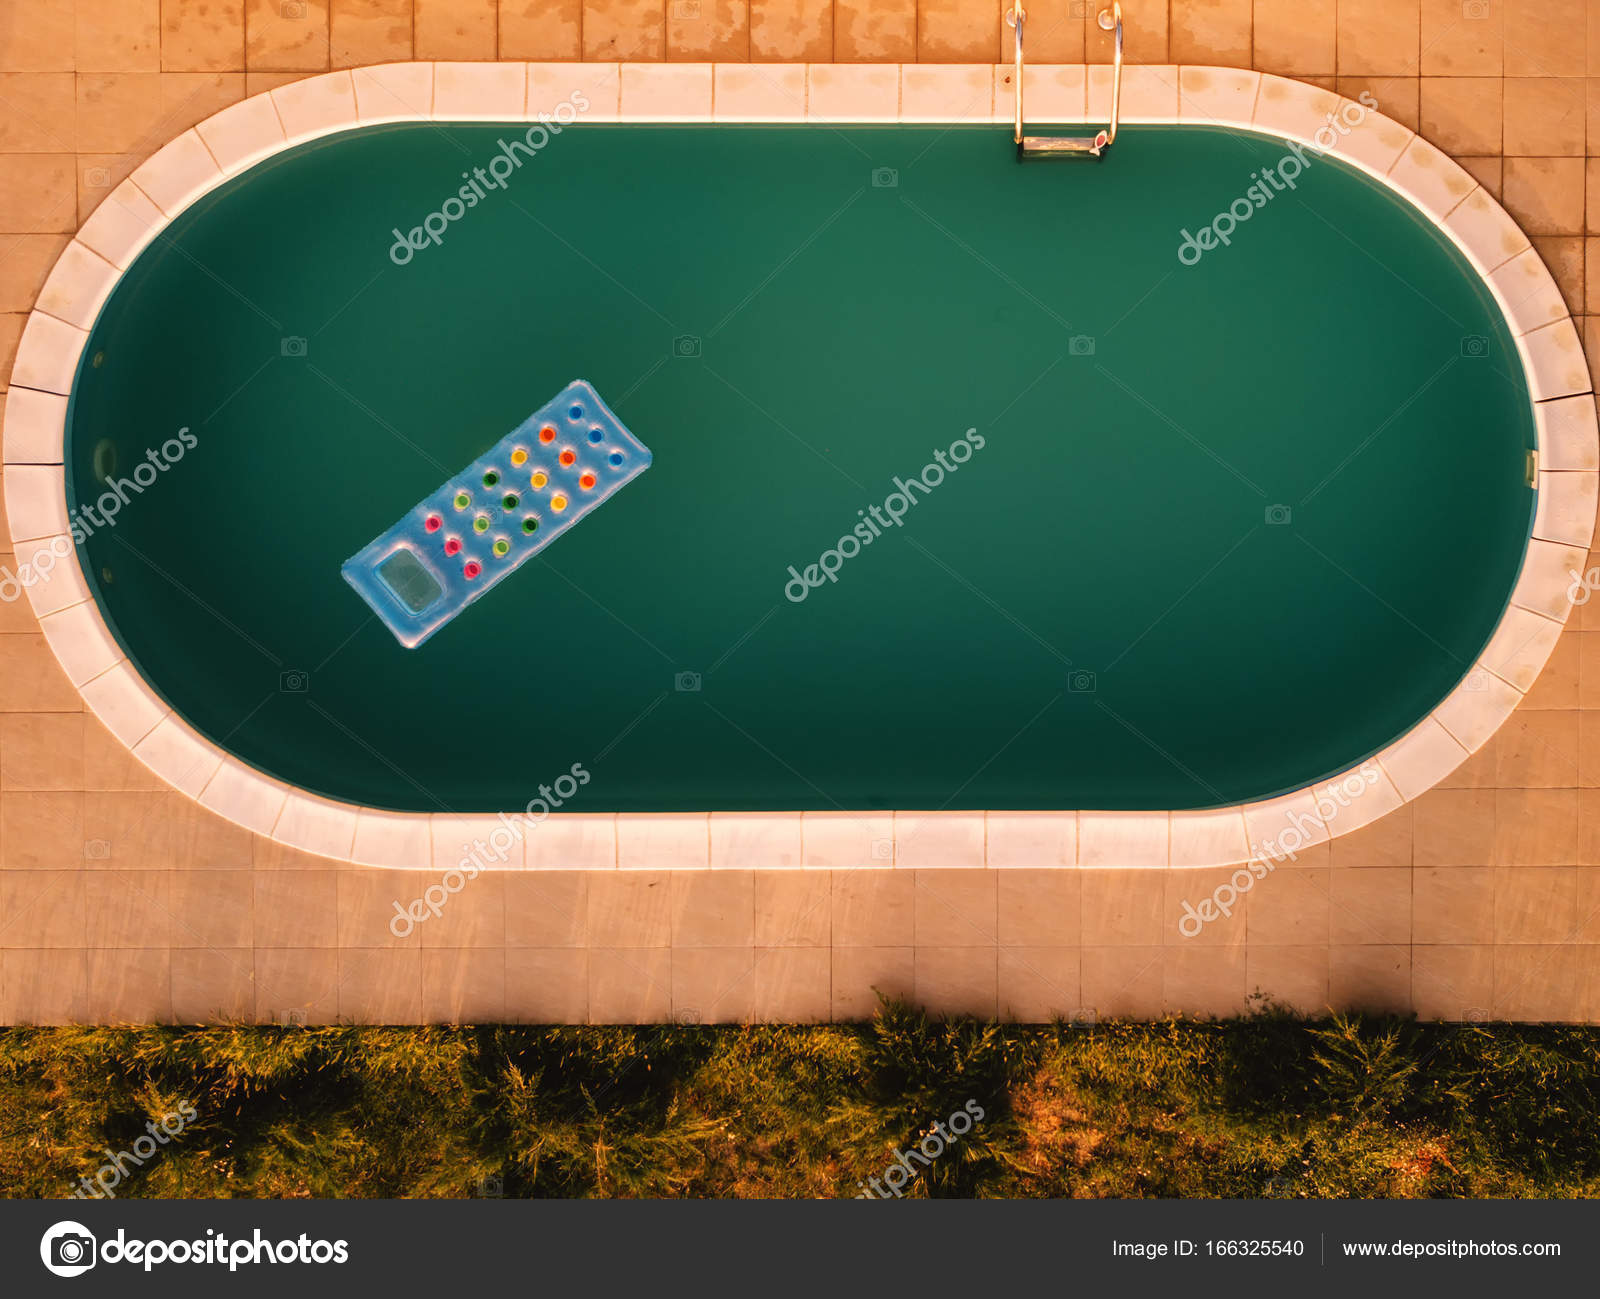 aerial view of inflatable mattress in swimming pool summer fun and enjoyment leisure activity equipment in the poolside water from drone point of view - Rectangle Pool Aerial View